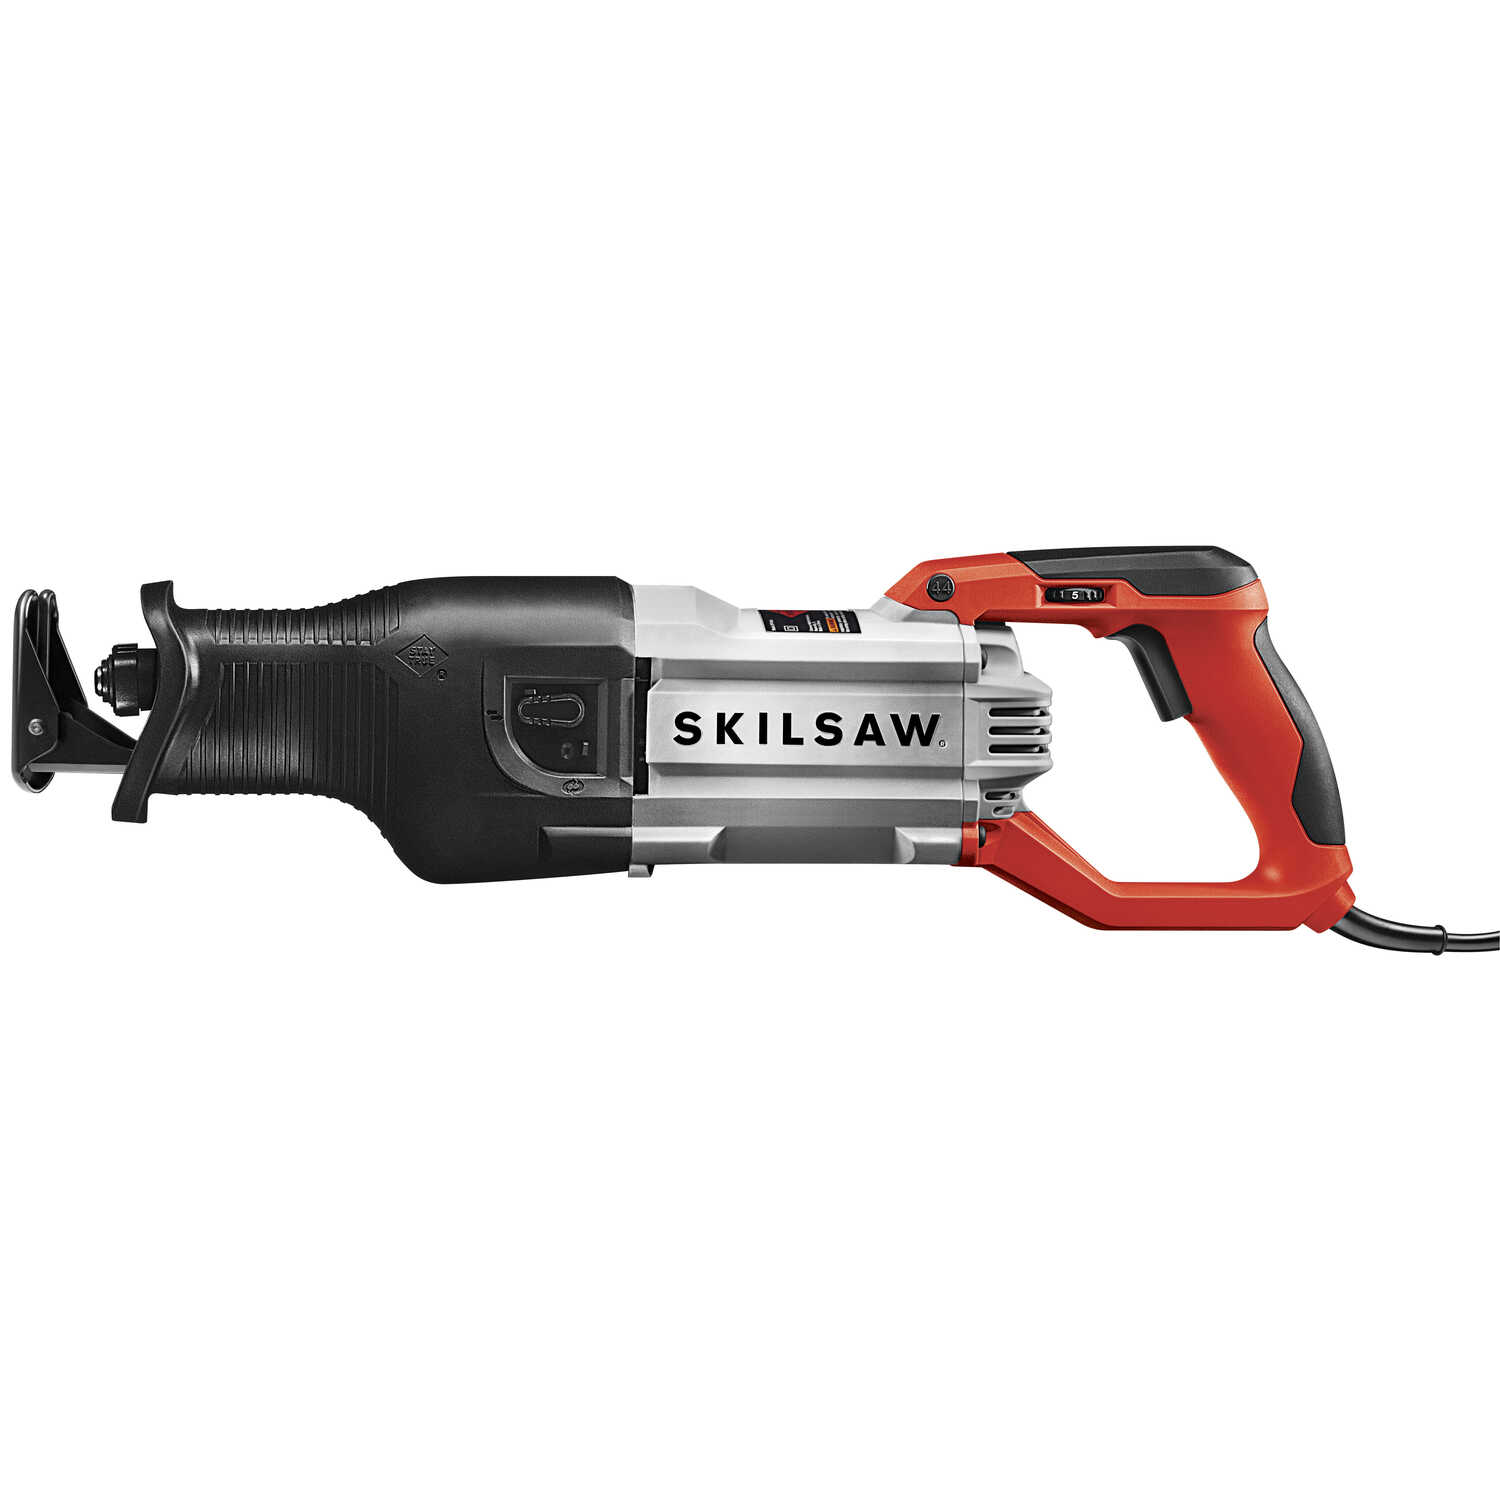 SKILSAW  1 in. Corded  Brushless Reciprocating Saw  Kit 15 amps 2900 spm